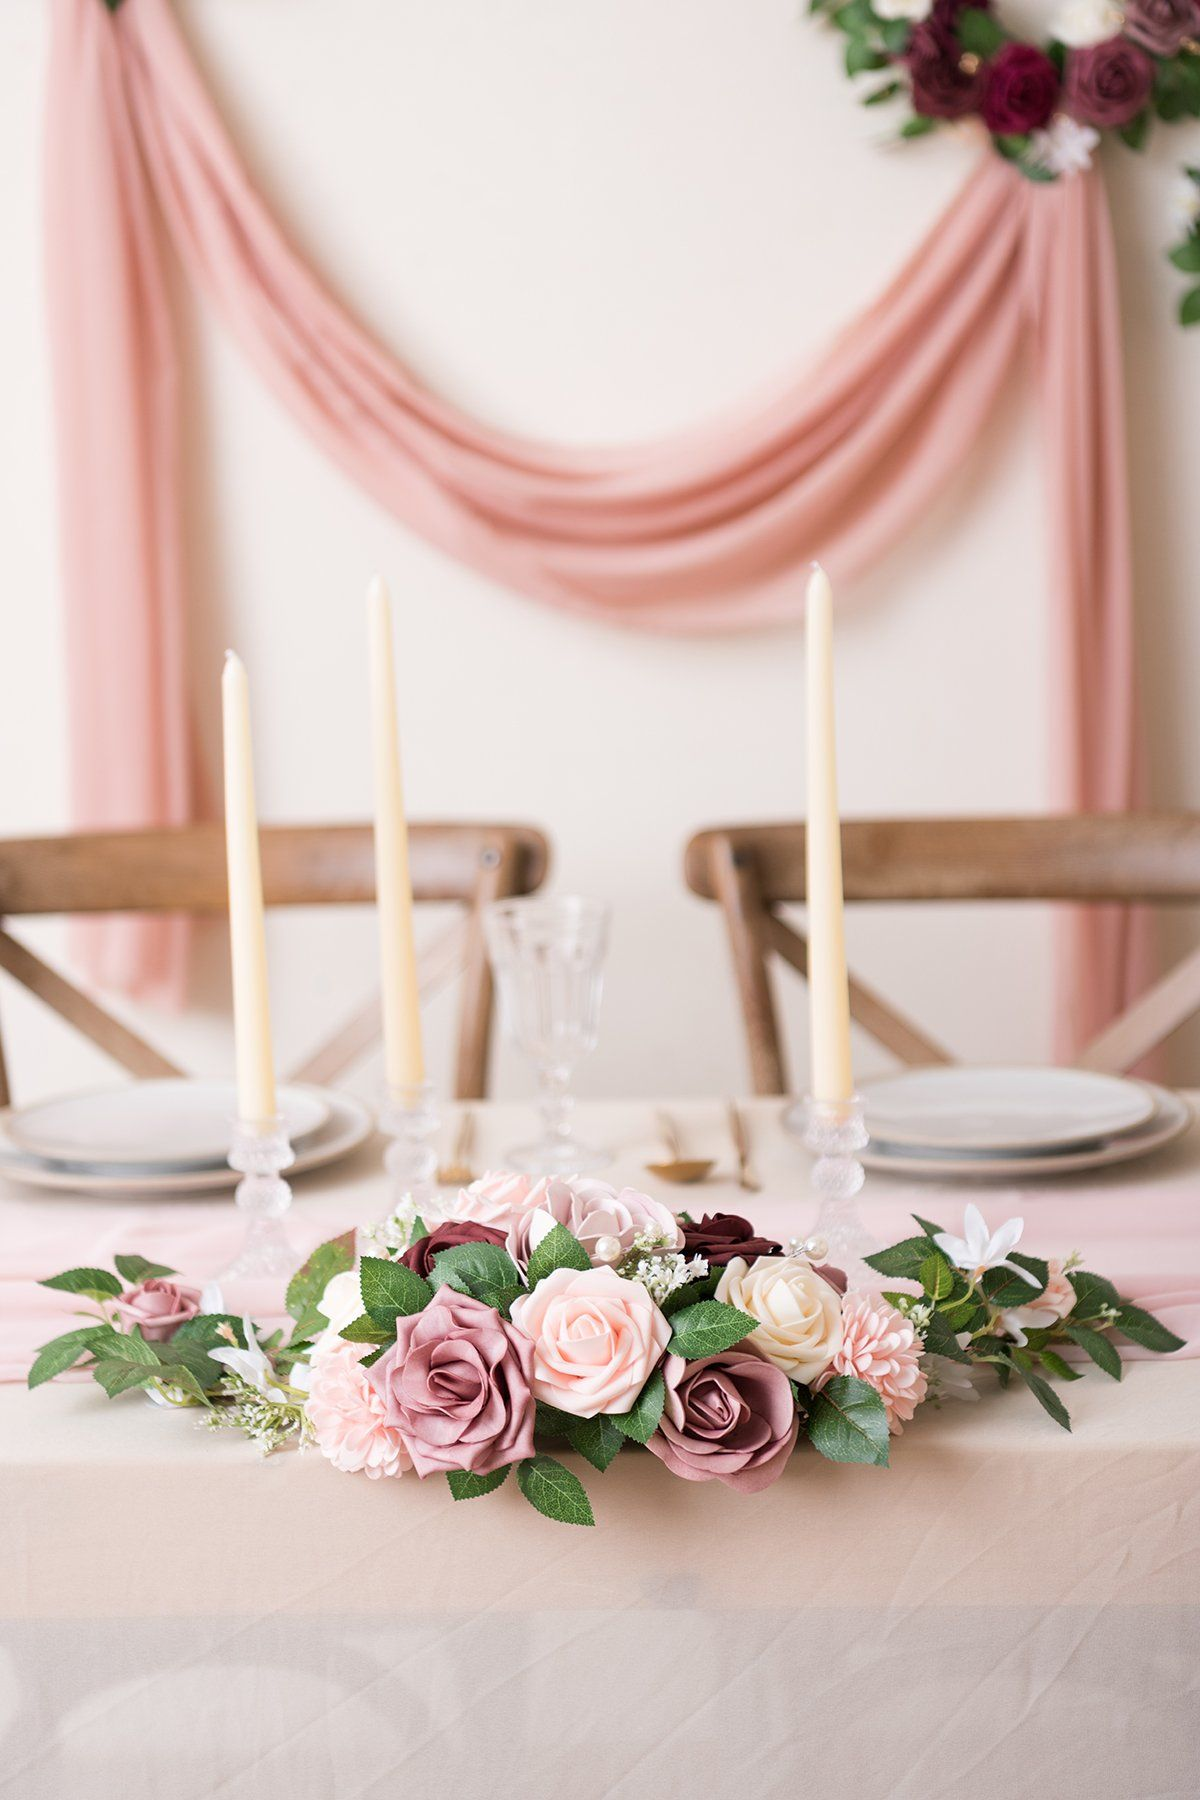 Artificial Rose Flower Swags and Garlands w/Sheer Swags